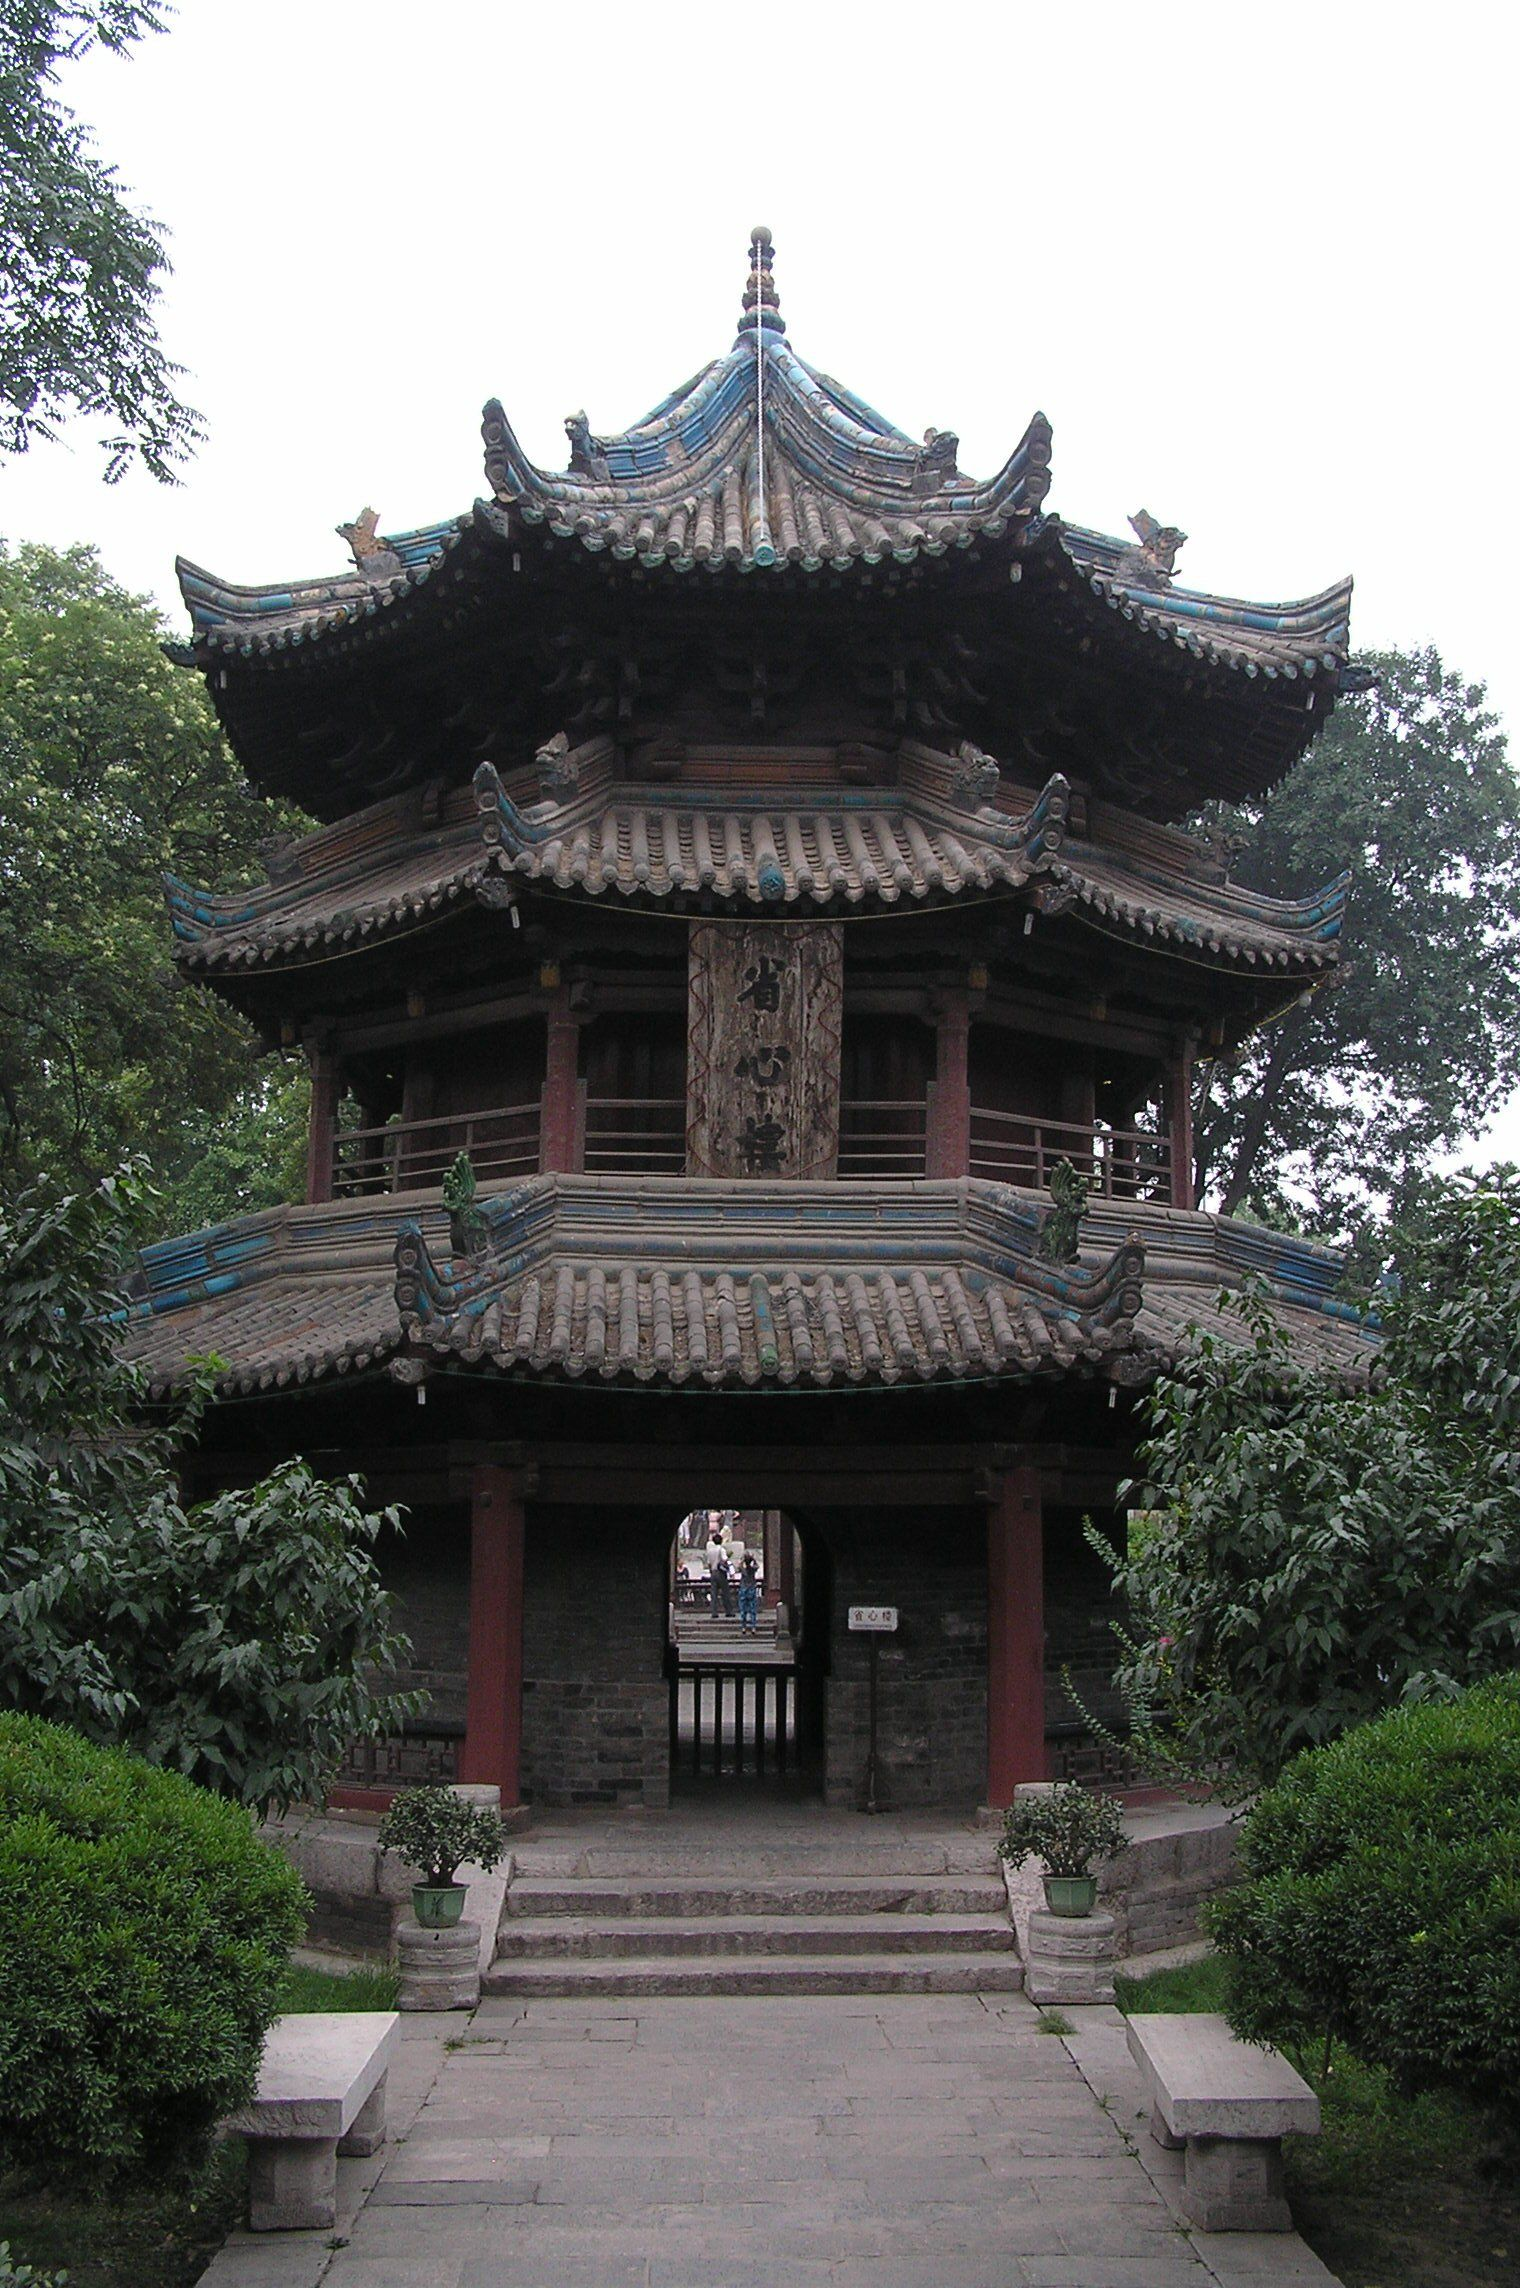 Architecture Great Mosque Of Xi An China Http Www Beautifulmosque Com Great Mosque Of Xian China Islam In China Chinese Architecture Islamic Architecture